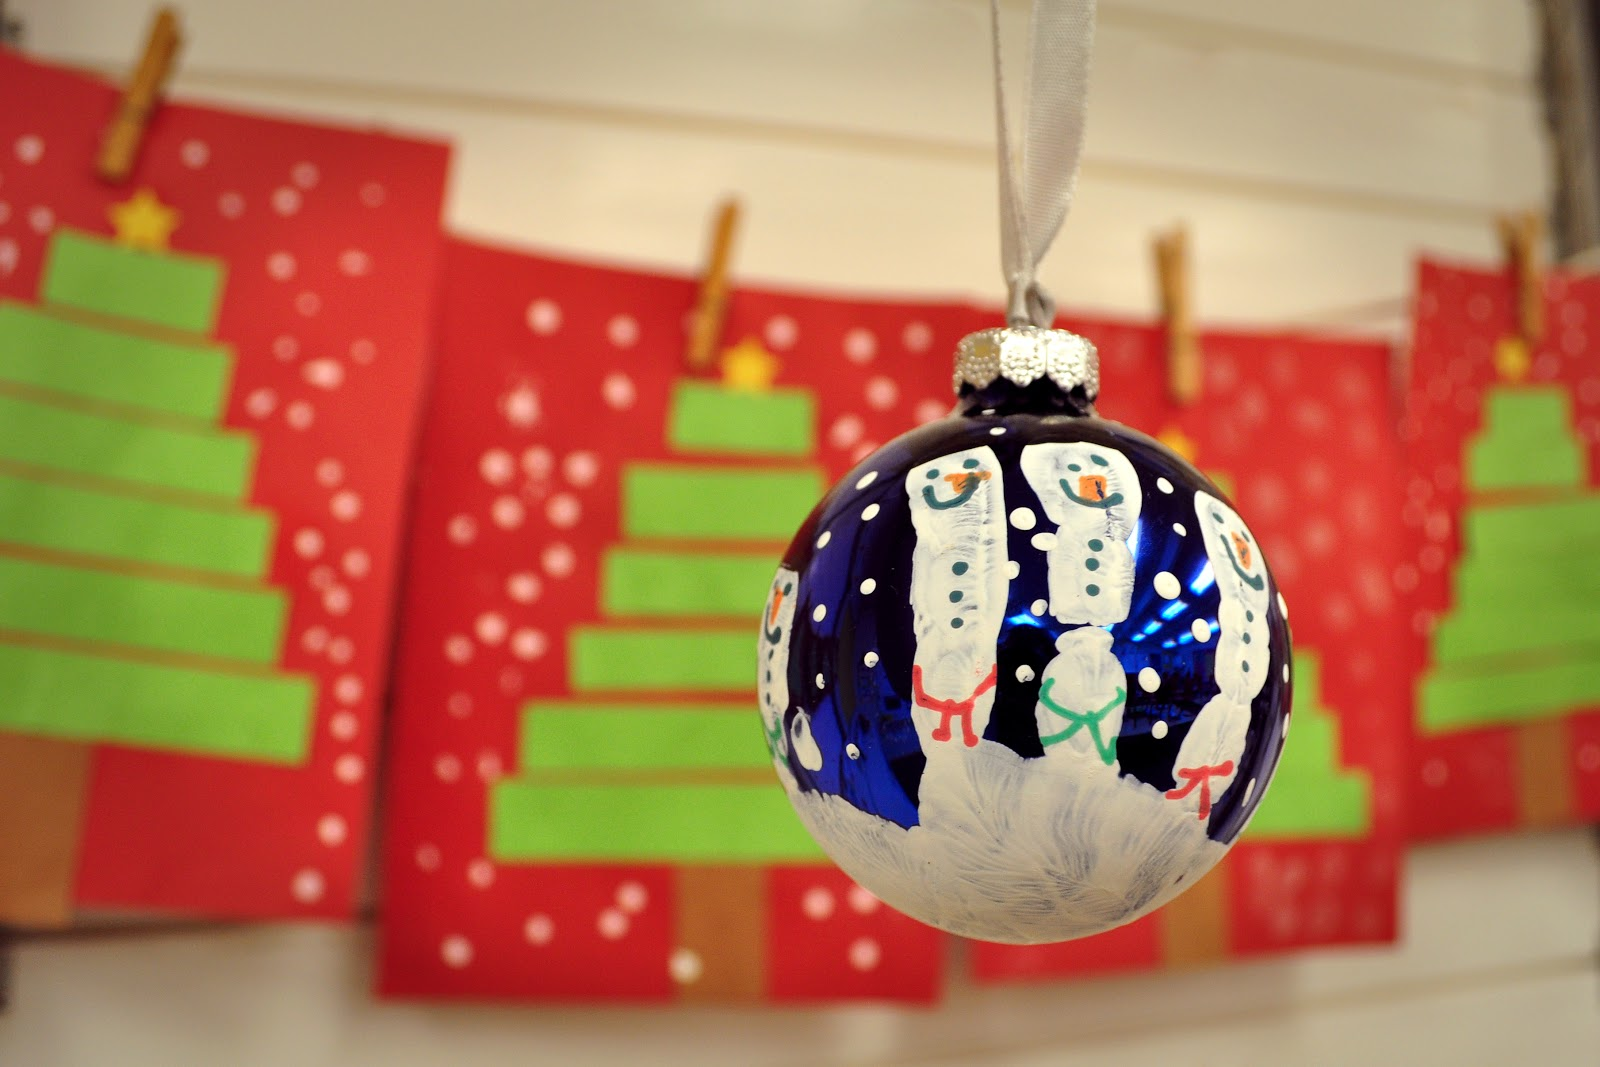 Christmas Arts And Crafts Ideas For Children Part - 48: Christmas Arts And Crafts